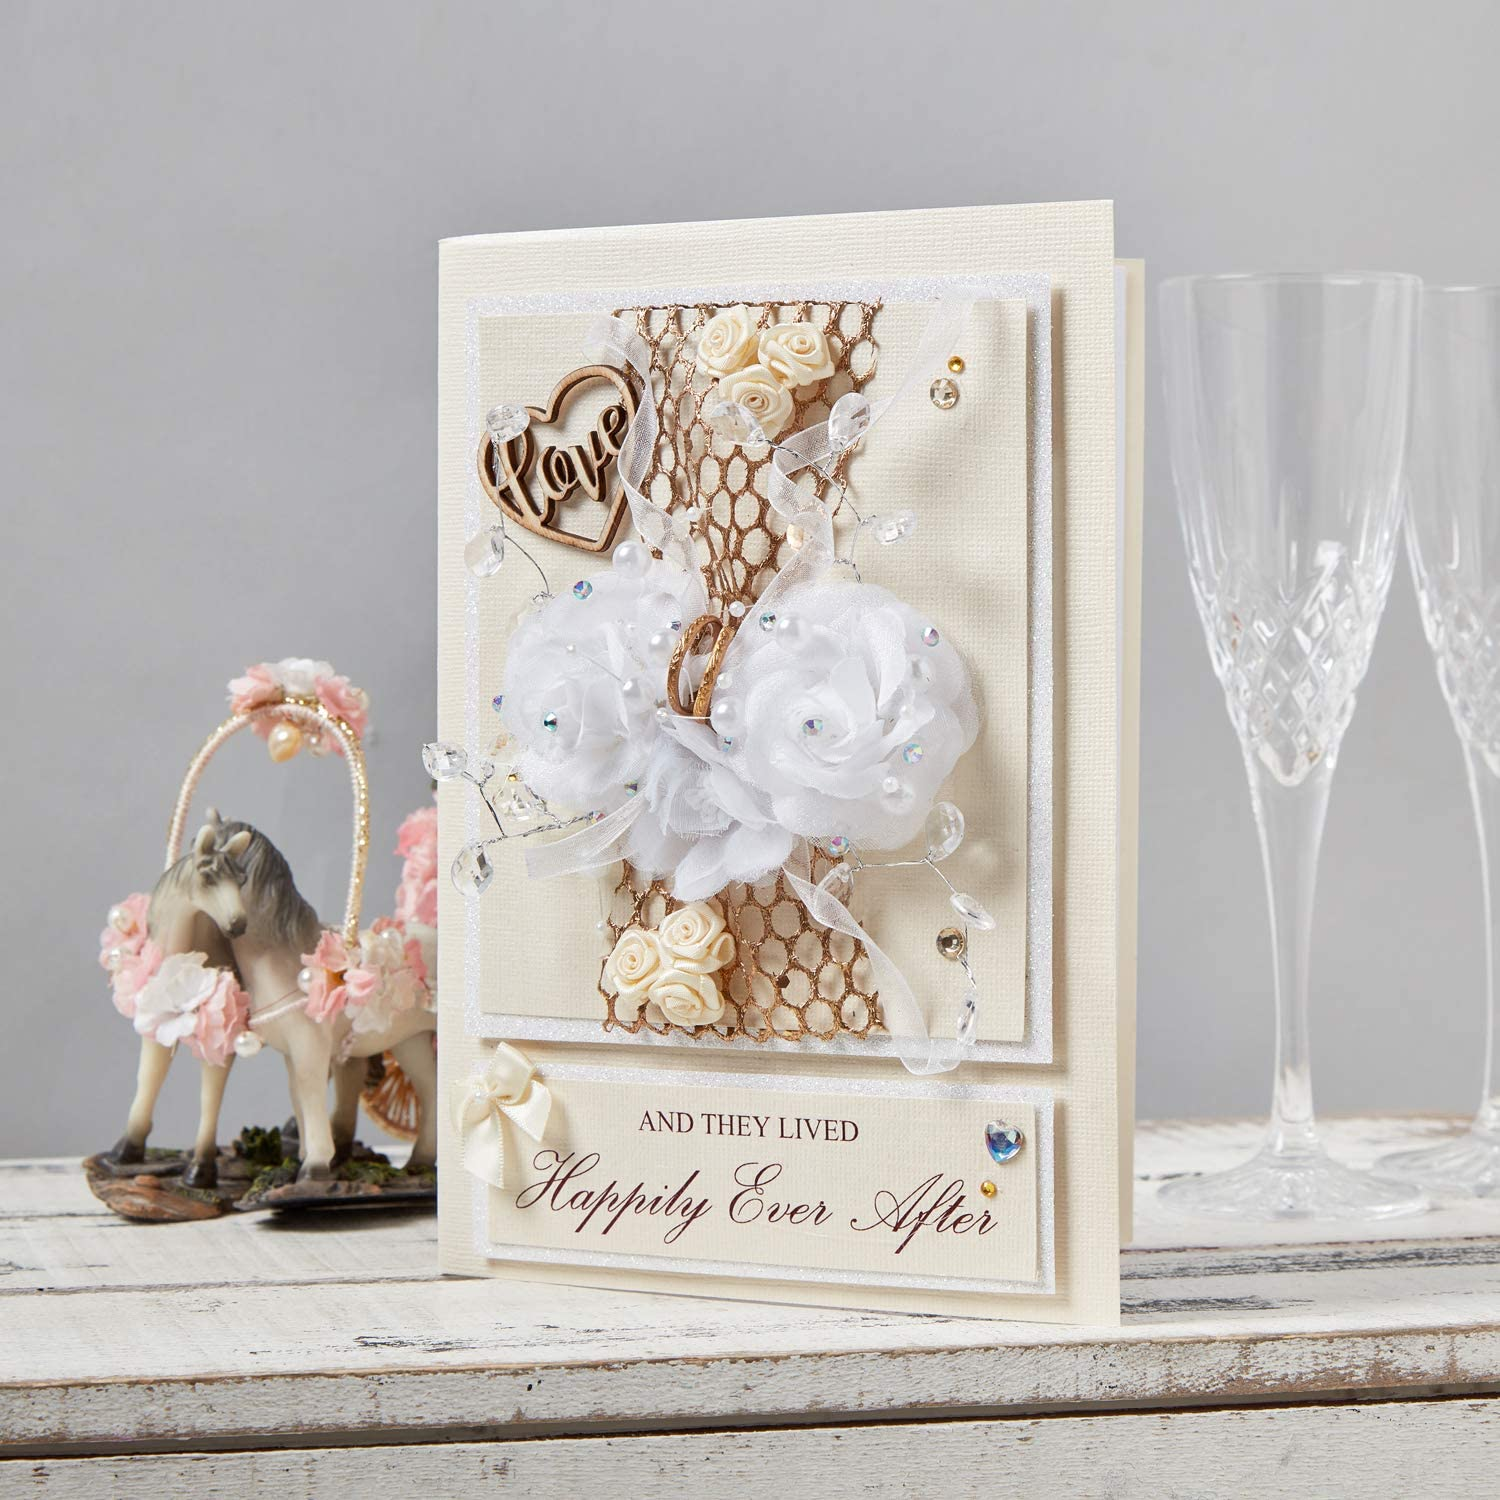 Handmade UK Wedding Gift Card Luxury /'and They Lived Happily Ever After/' Keepsake Boxed Wedding Card 3D Gift for The Bride and Groom Mr and Mrs to be Wedding Day Card Congratulations